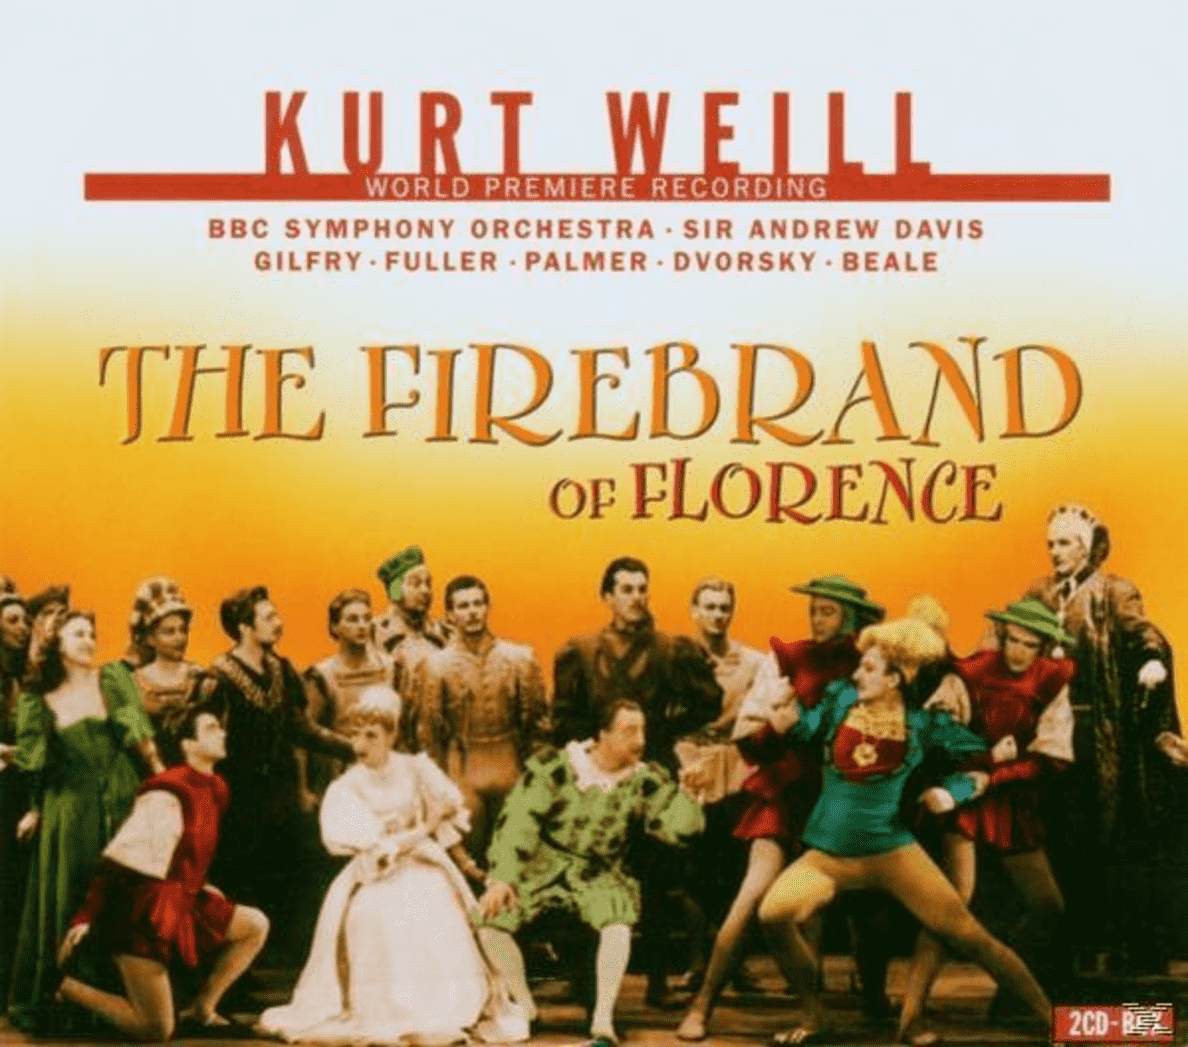 The Firebrand Of Florence BBC Symphony Orchestra auf CD